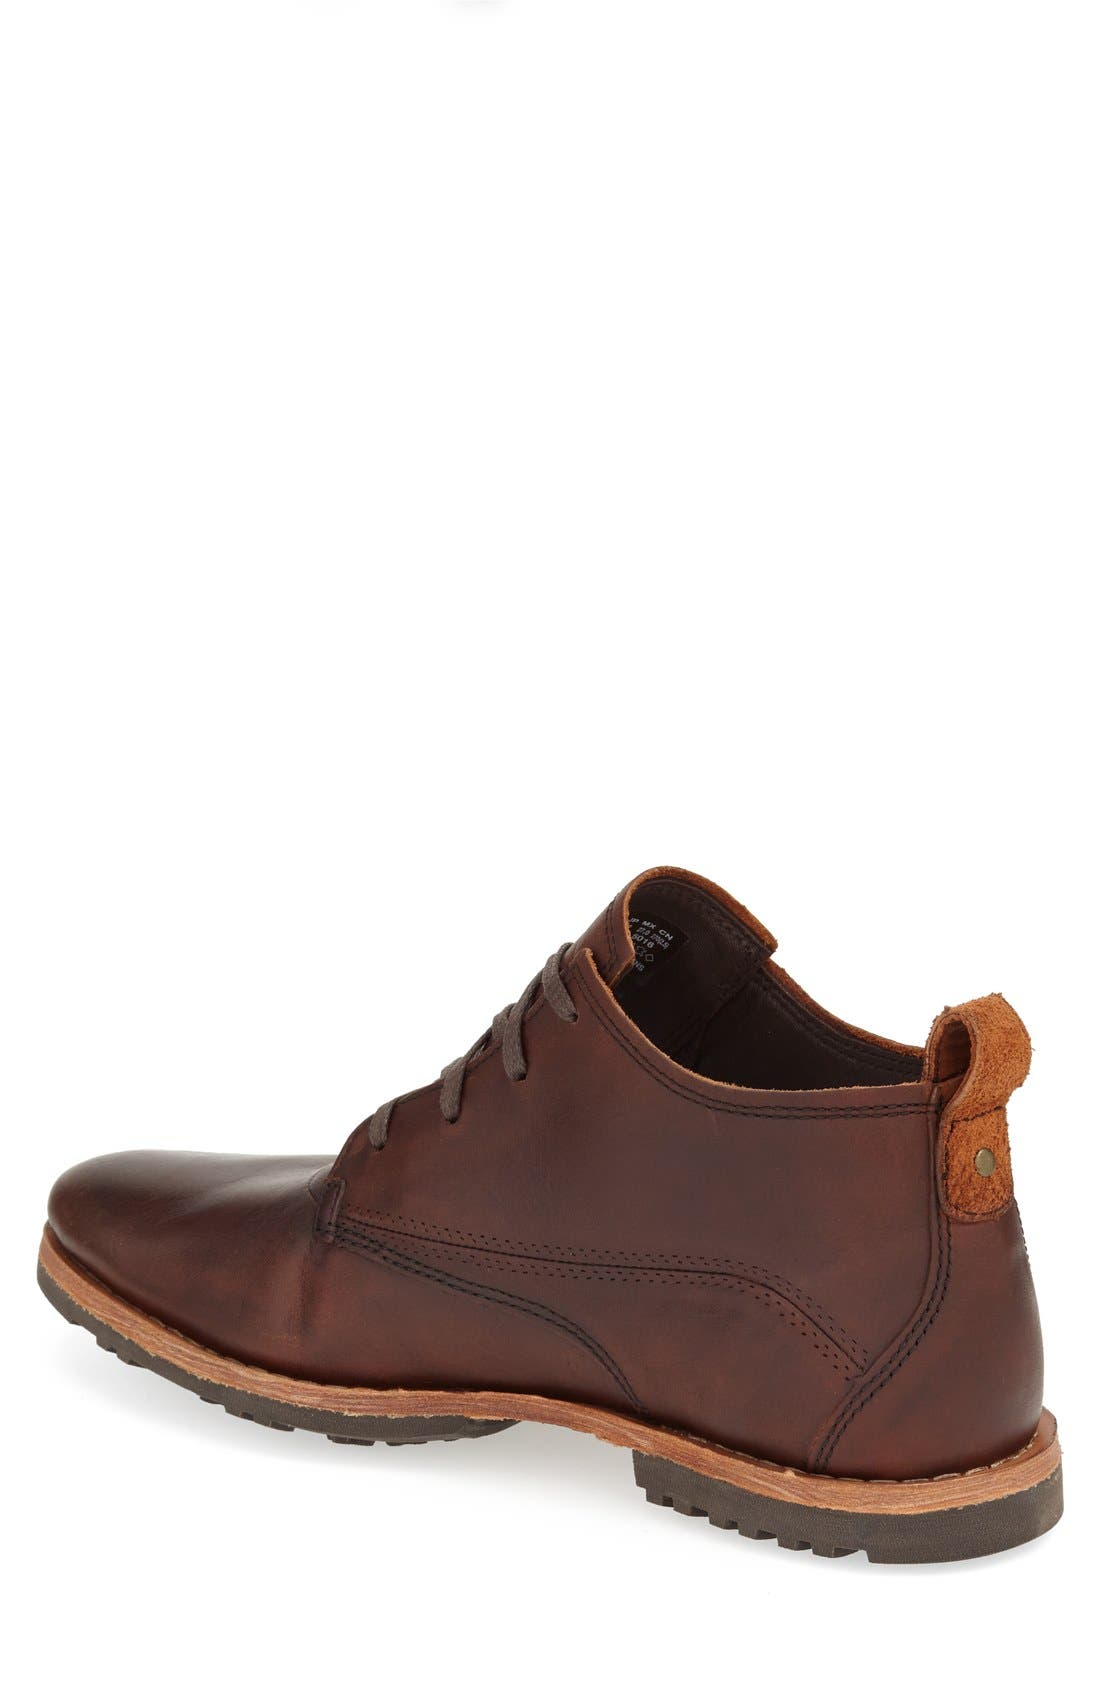 'Bardstown' Chukka Boot,                             Alternate thumbnail 10, color,